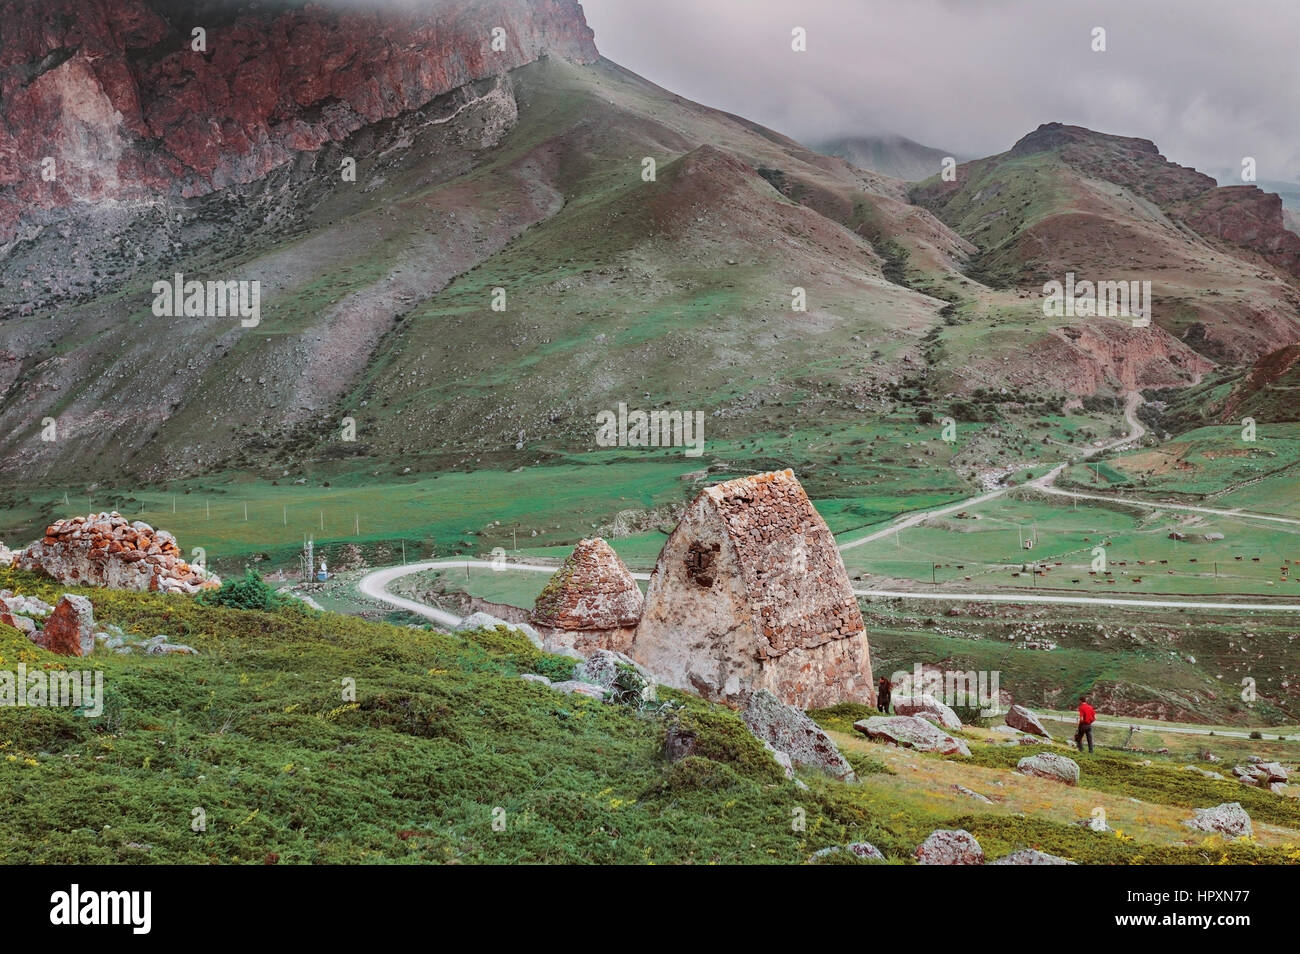 The medieval cemetery of ancient Alans. Caucasus, Russia. - Stock Image